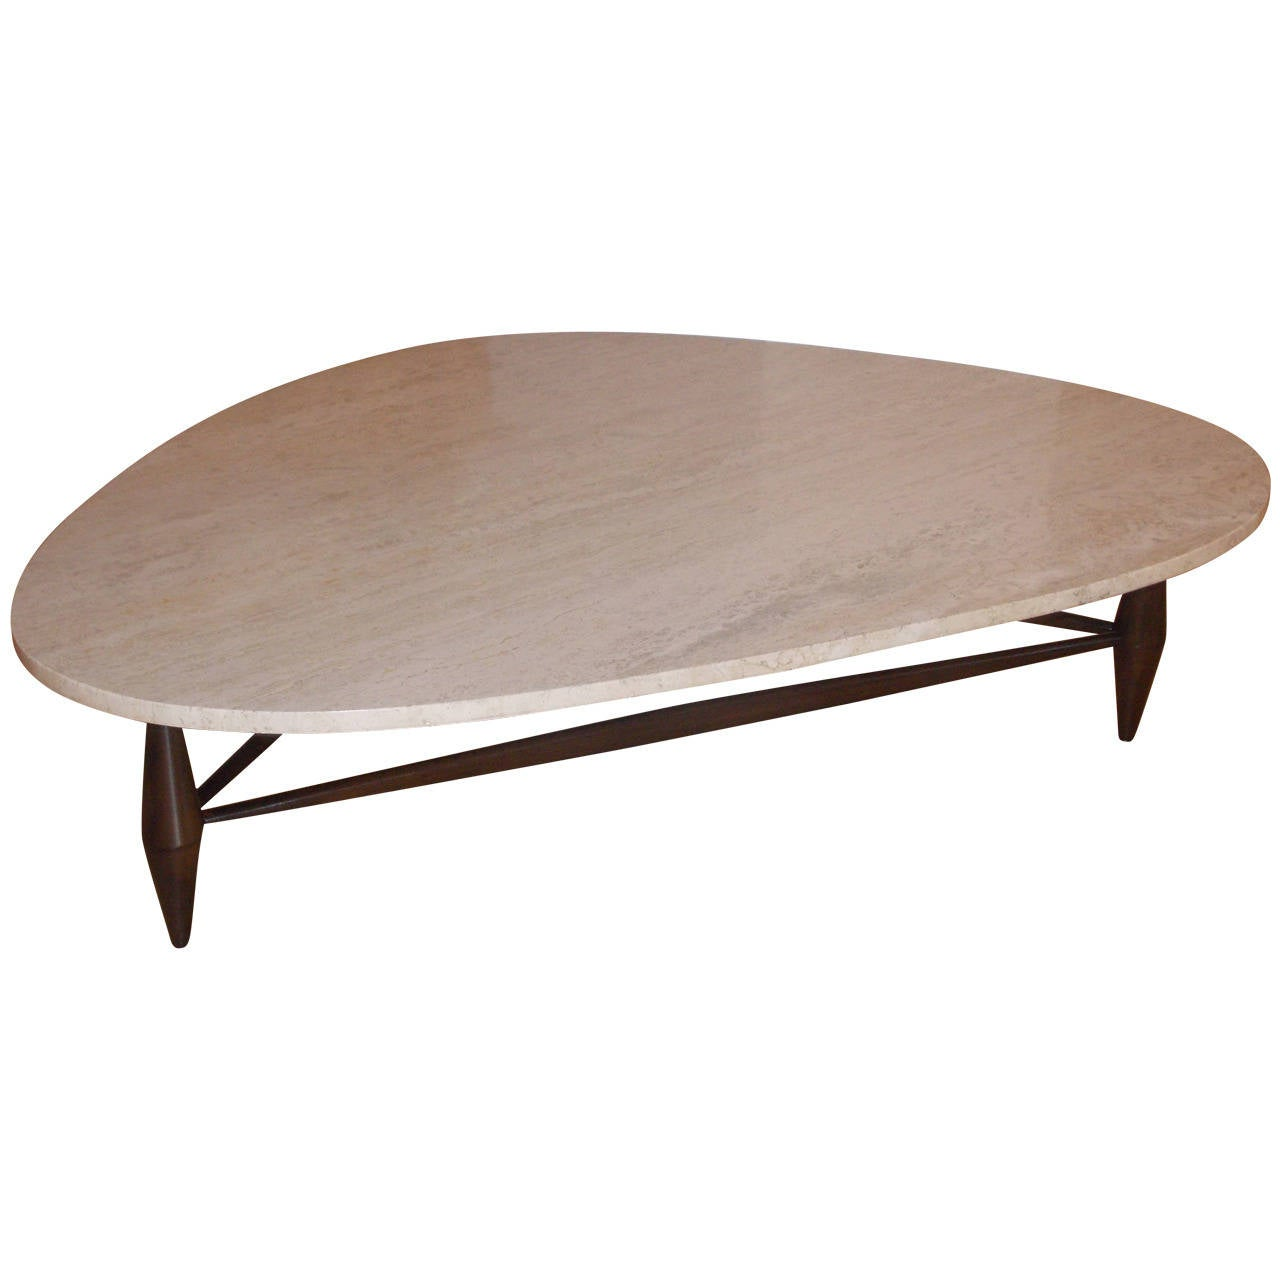 Mid Century Modern Marble Top Coffee Table: Mid Century Marble Top Coffee Table At 1stdibs